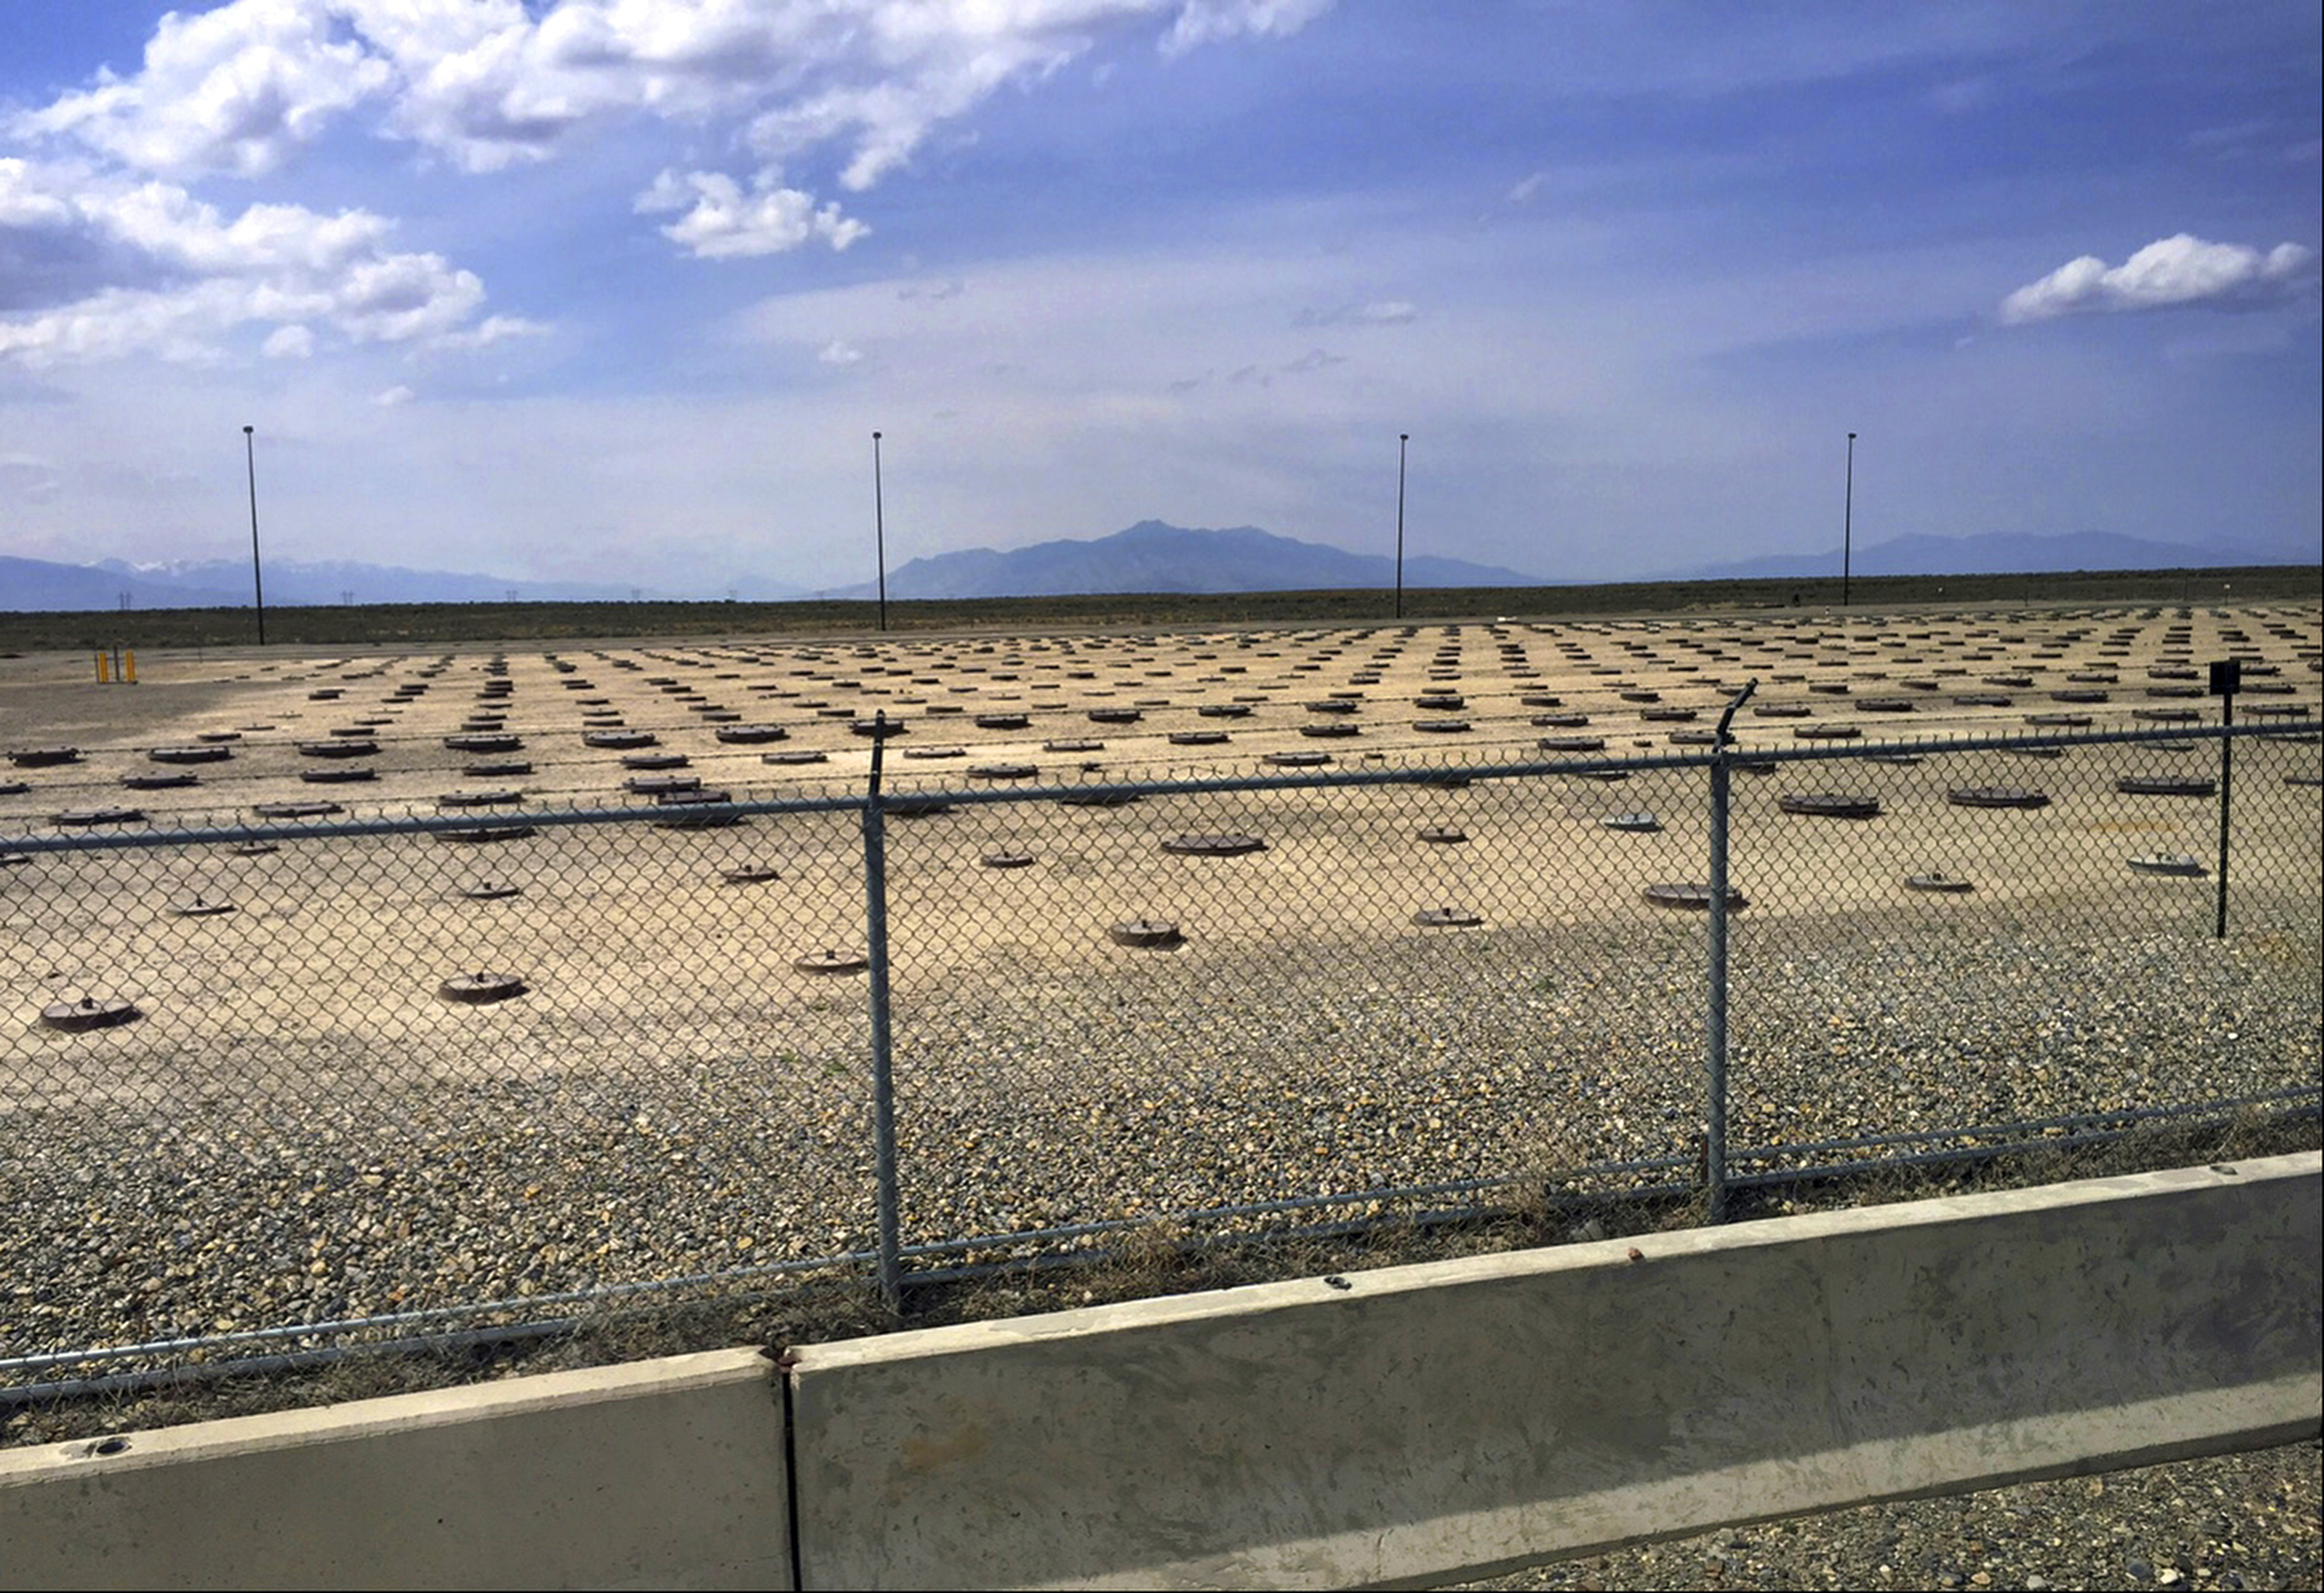 Three Mile Island nuclear debris from 1979 accident could remain in Idaho